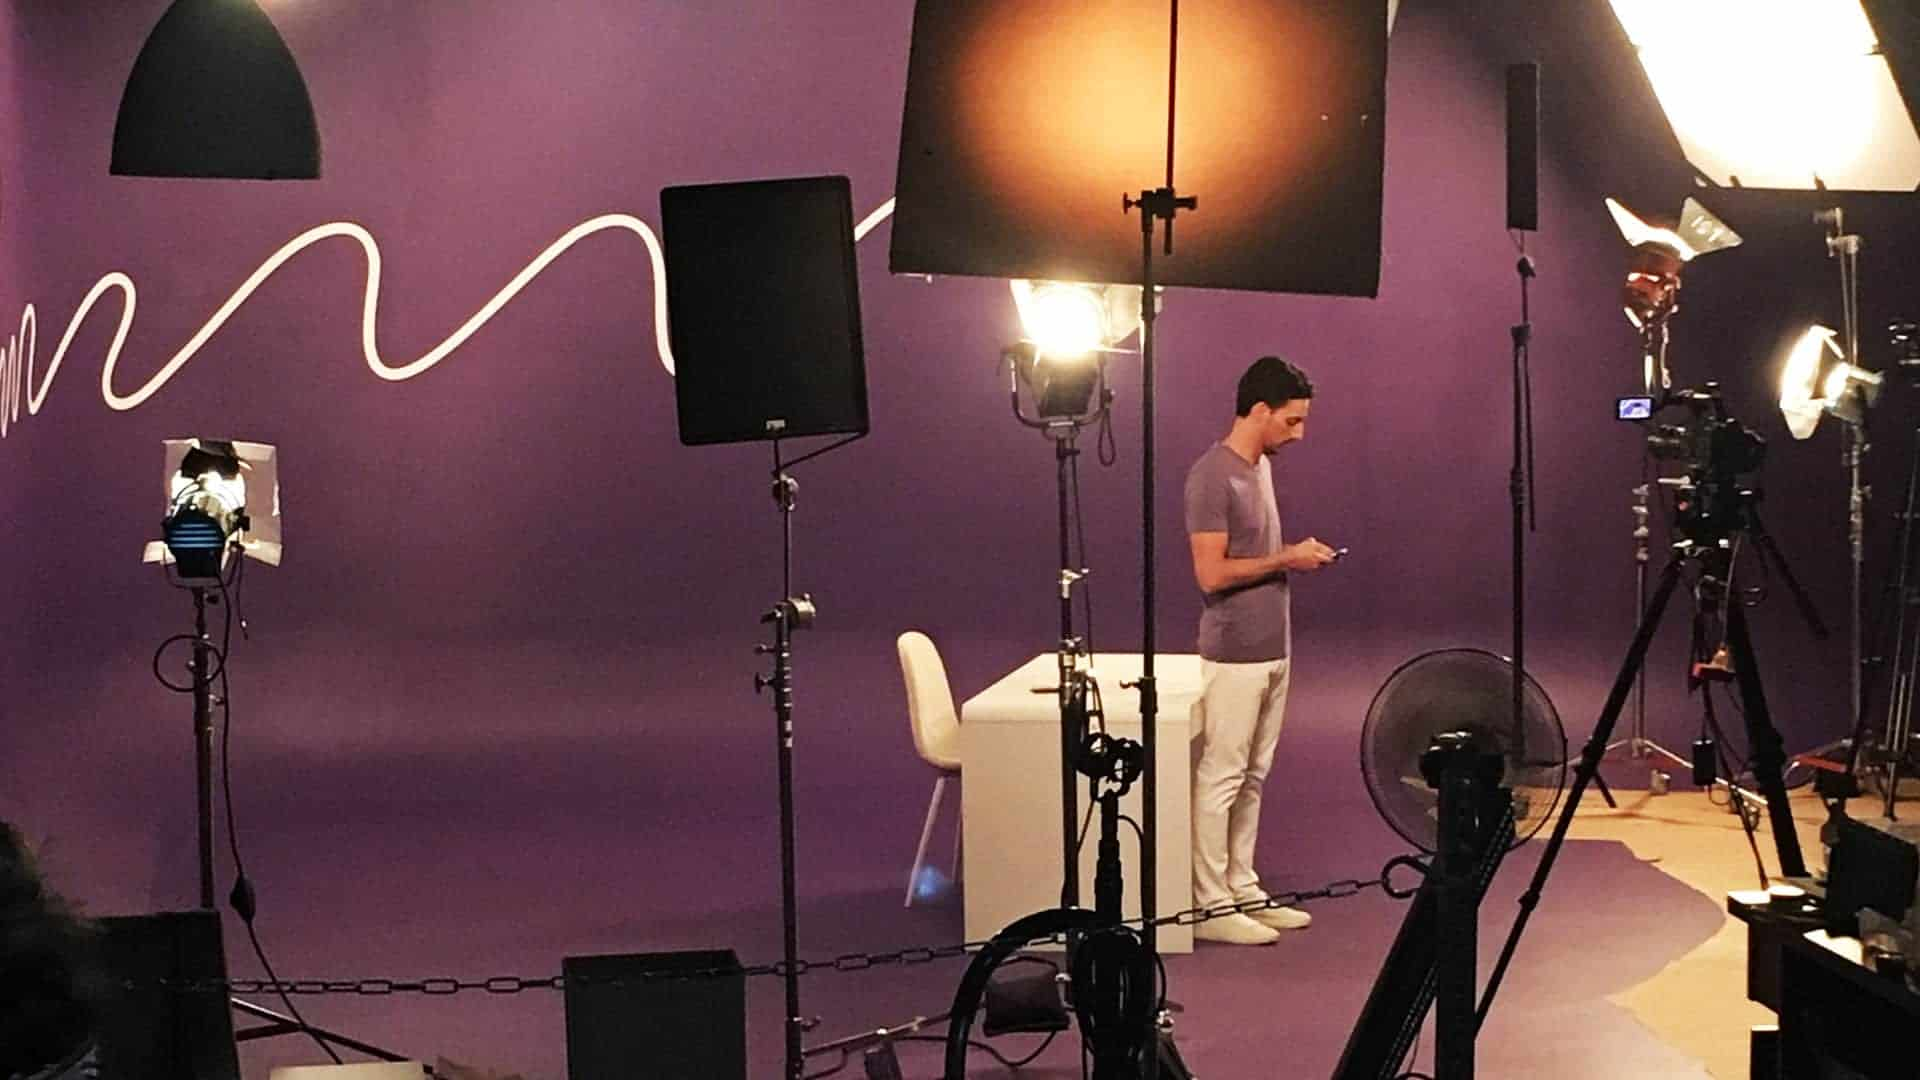 BTS shoot from craftsy on cyclorama